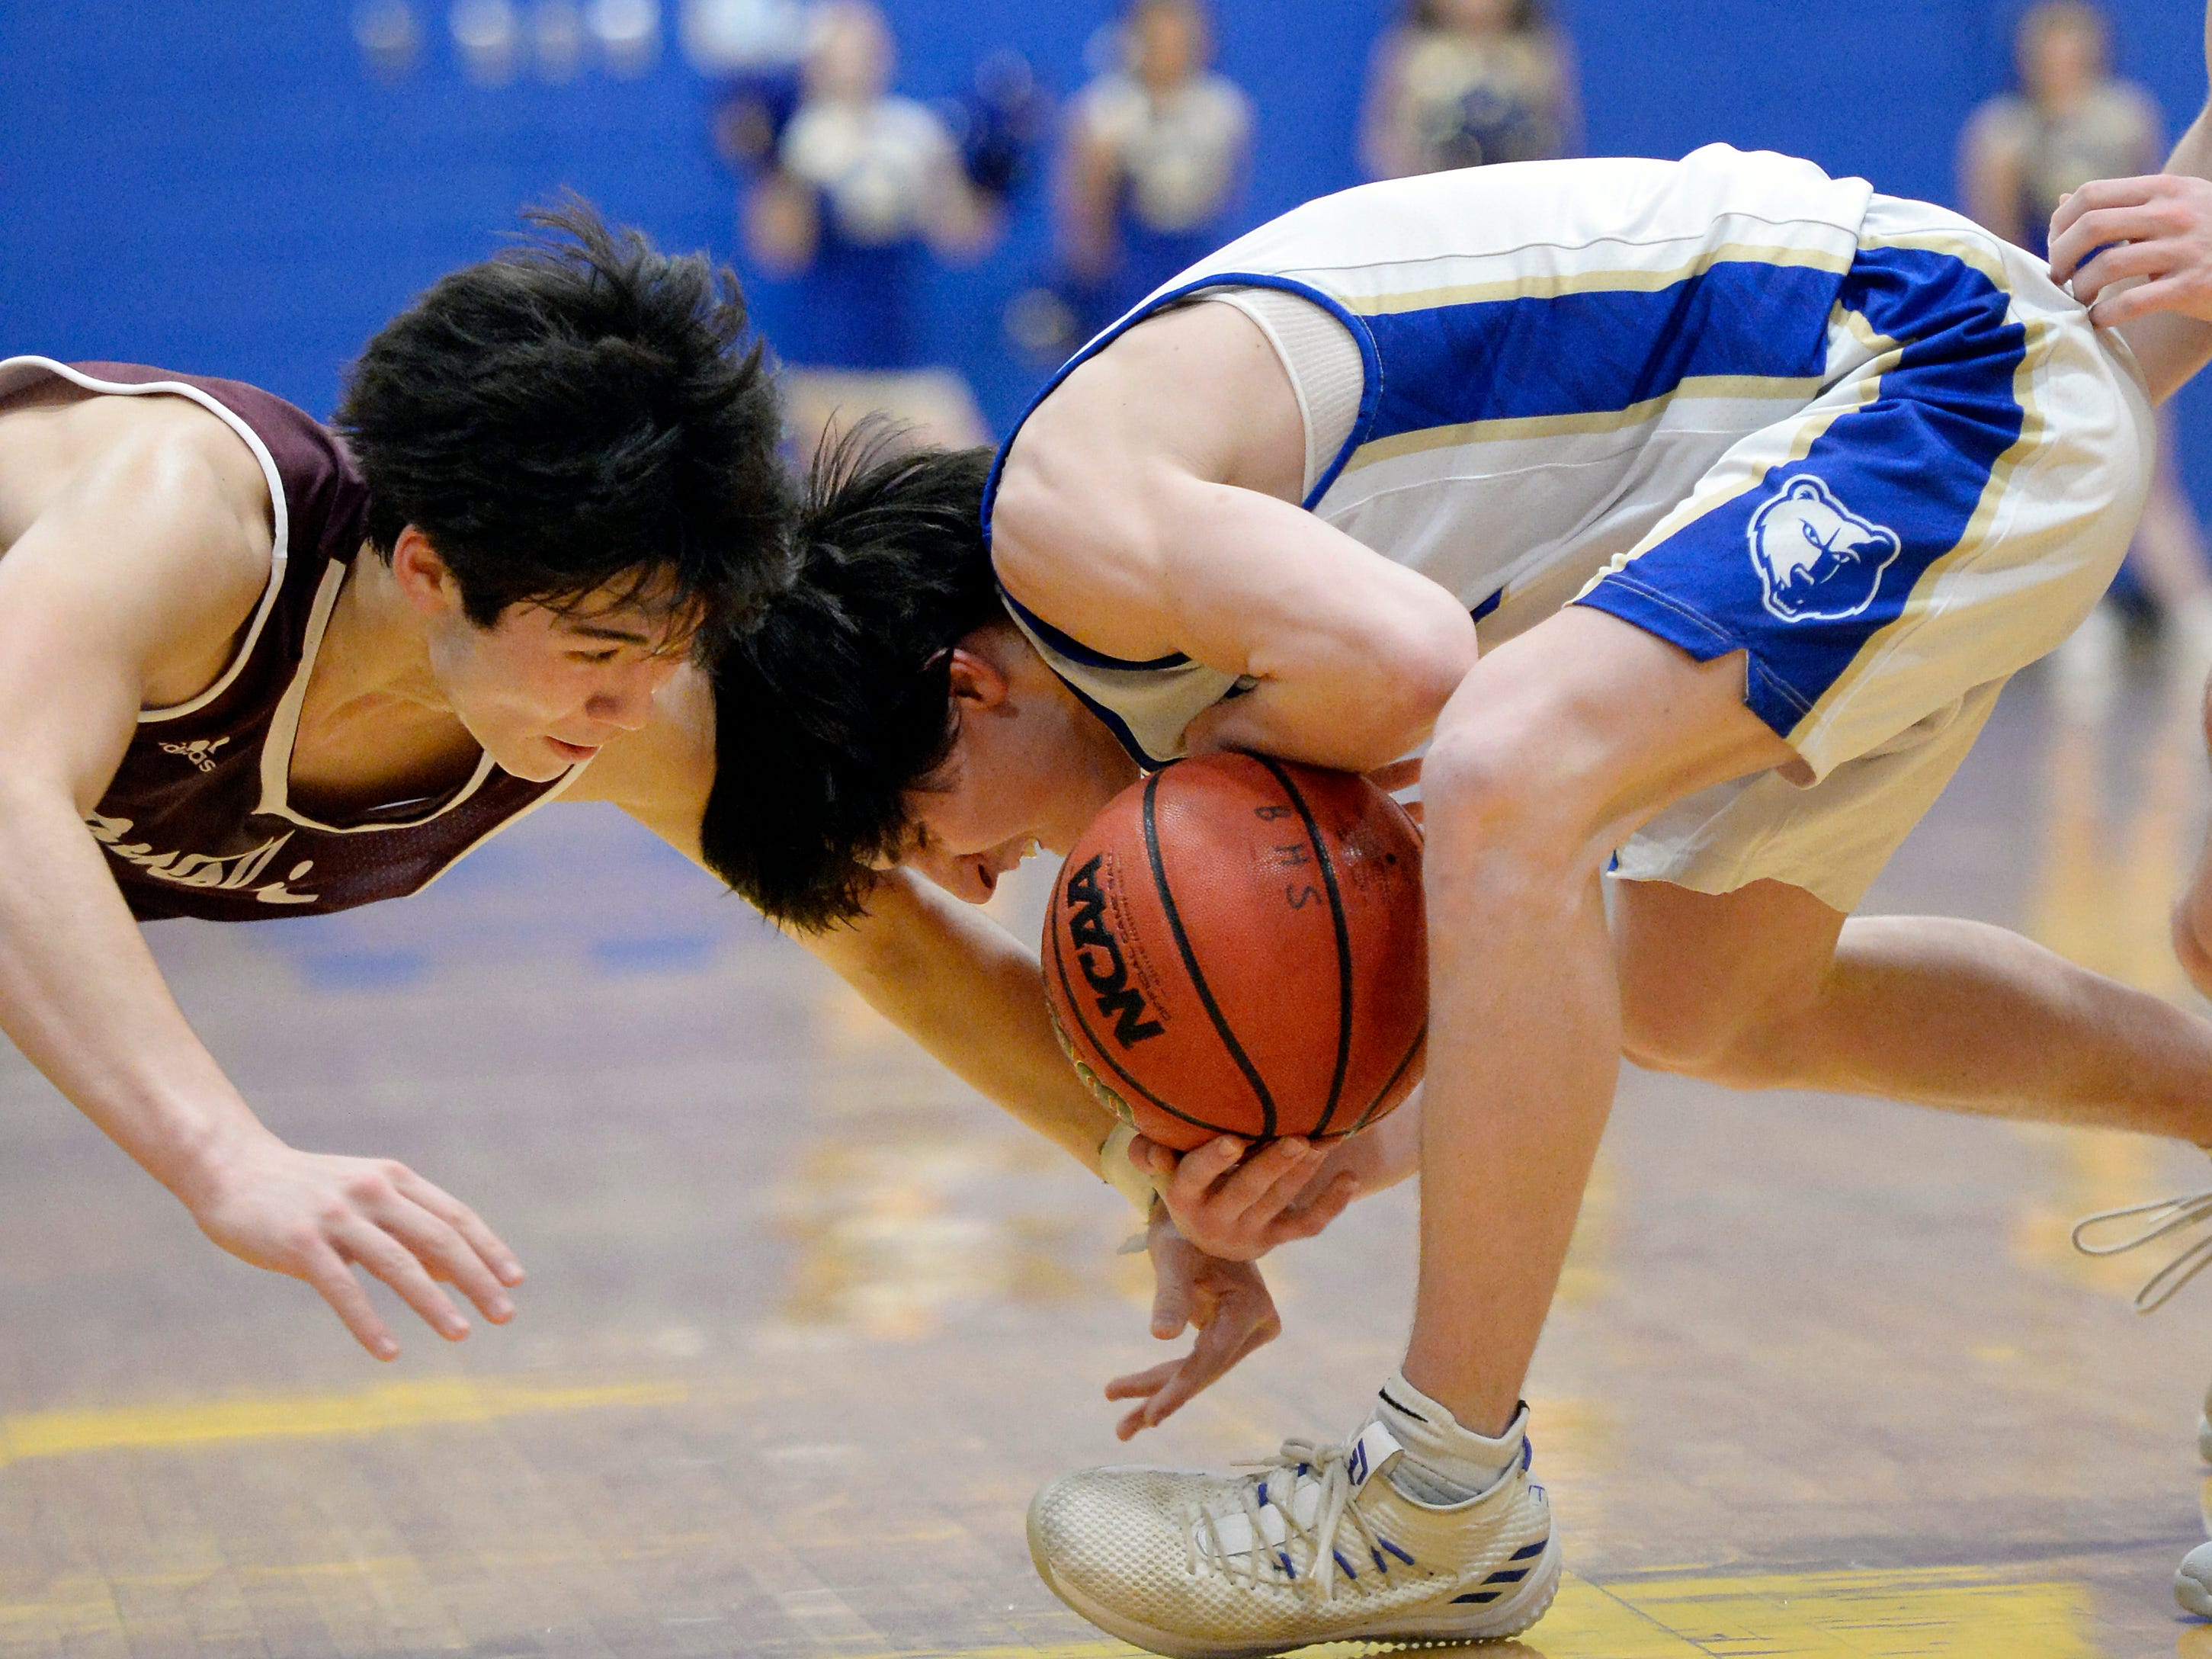 Franklin guard Reed Kemp, left, battles Brentwood guard Preston Moore (12) for the ball during the second half of an High School basketball game Tuesday, Jan. 15, 2019, in Brentwood, Tenn. Franklin won 53-51.